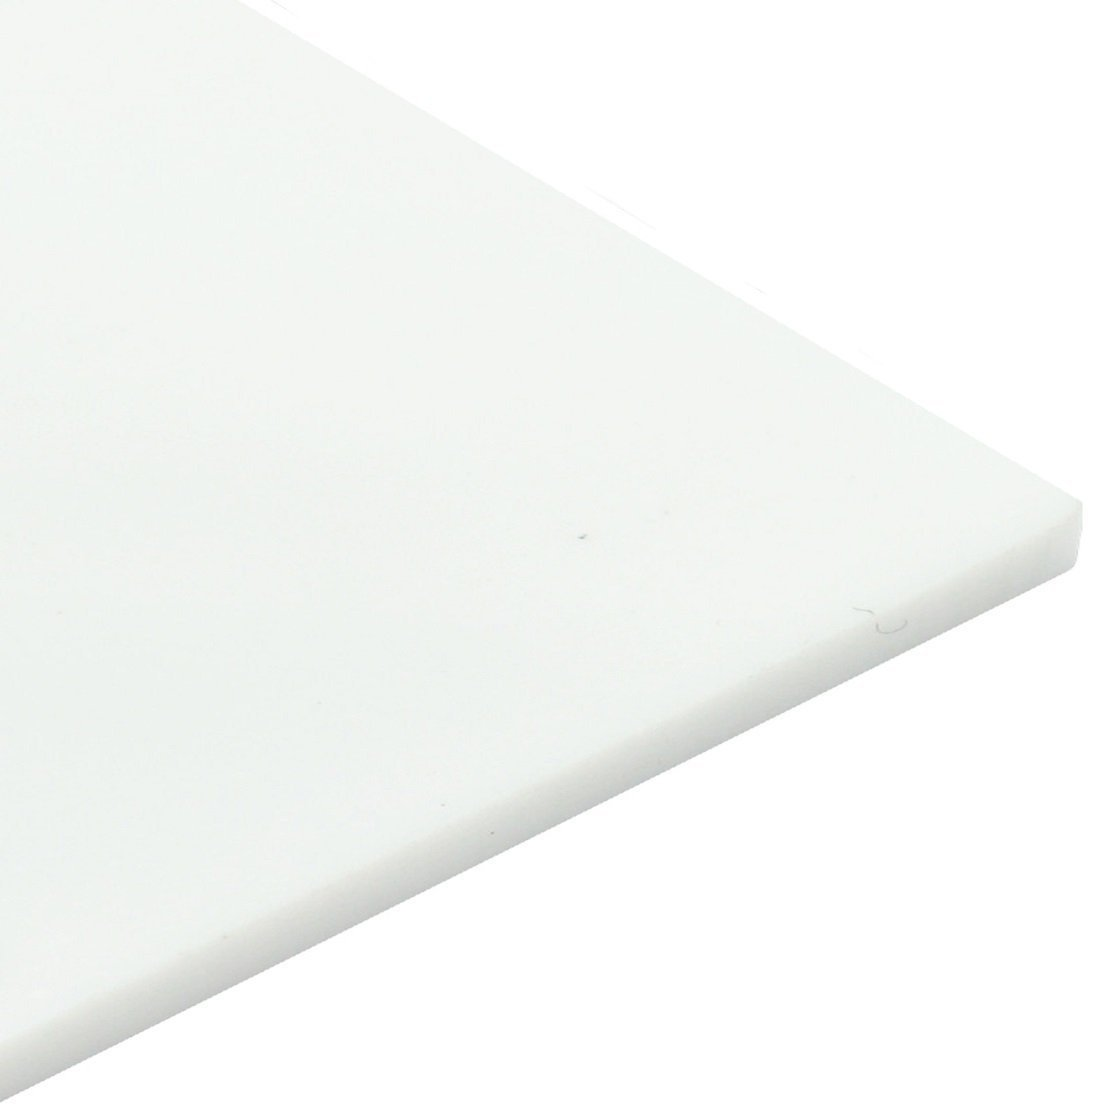 3mm Perspex White Matt Acrylic Plastic Sheet 16 SIZES TO CHOOSE (100mm x 100mm) Sign Materials Direct